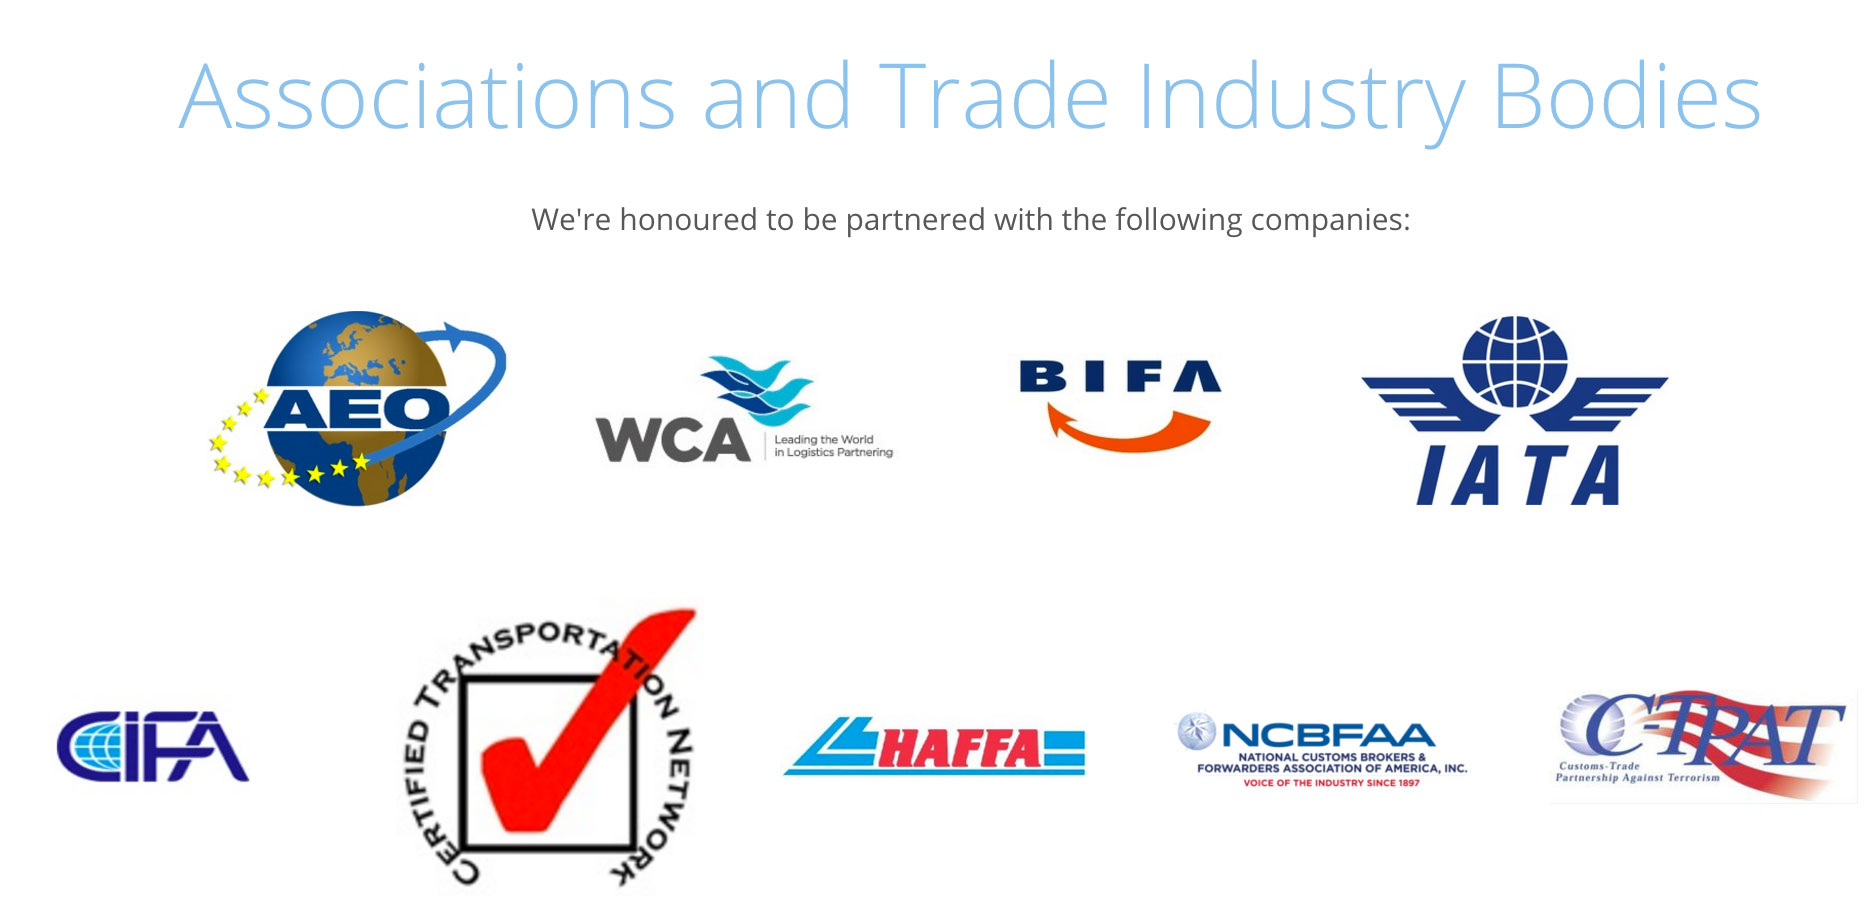 WTA Group International Logistics Experts Affiliates